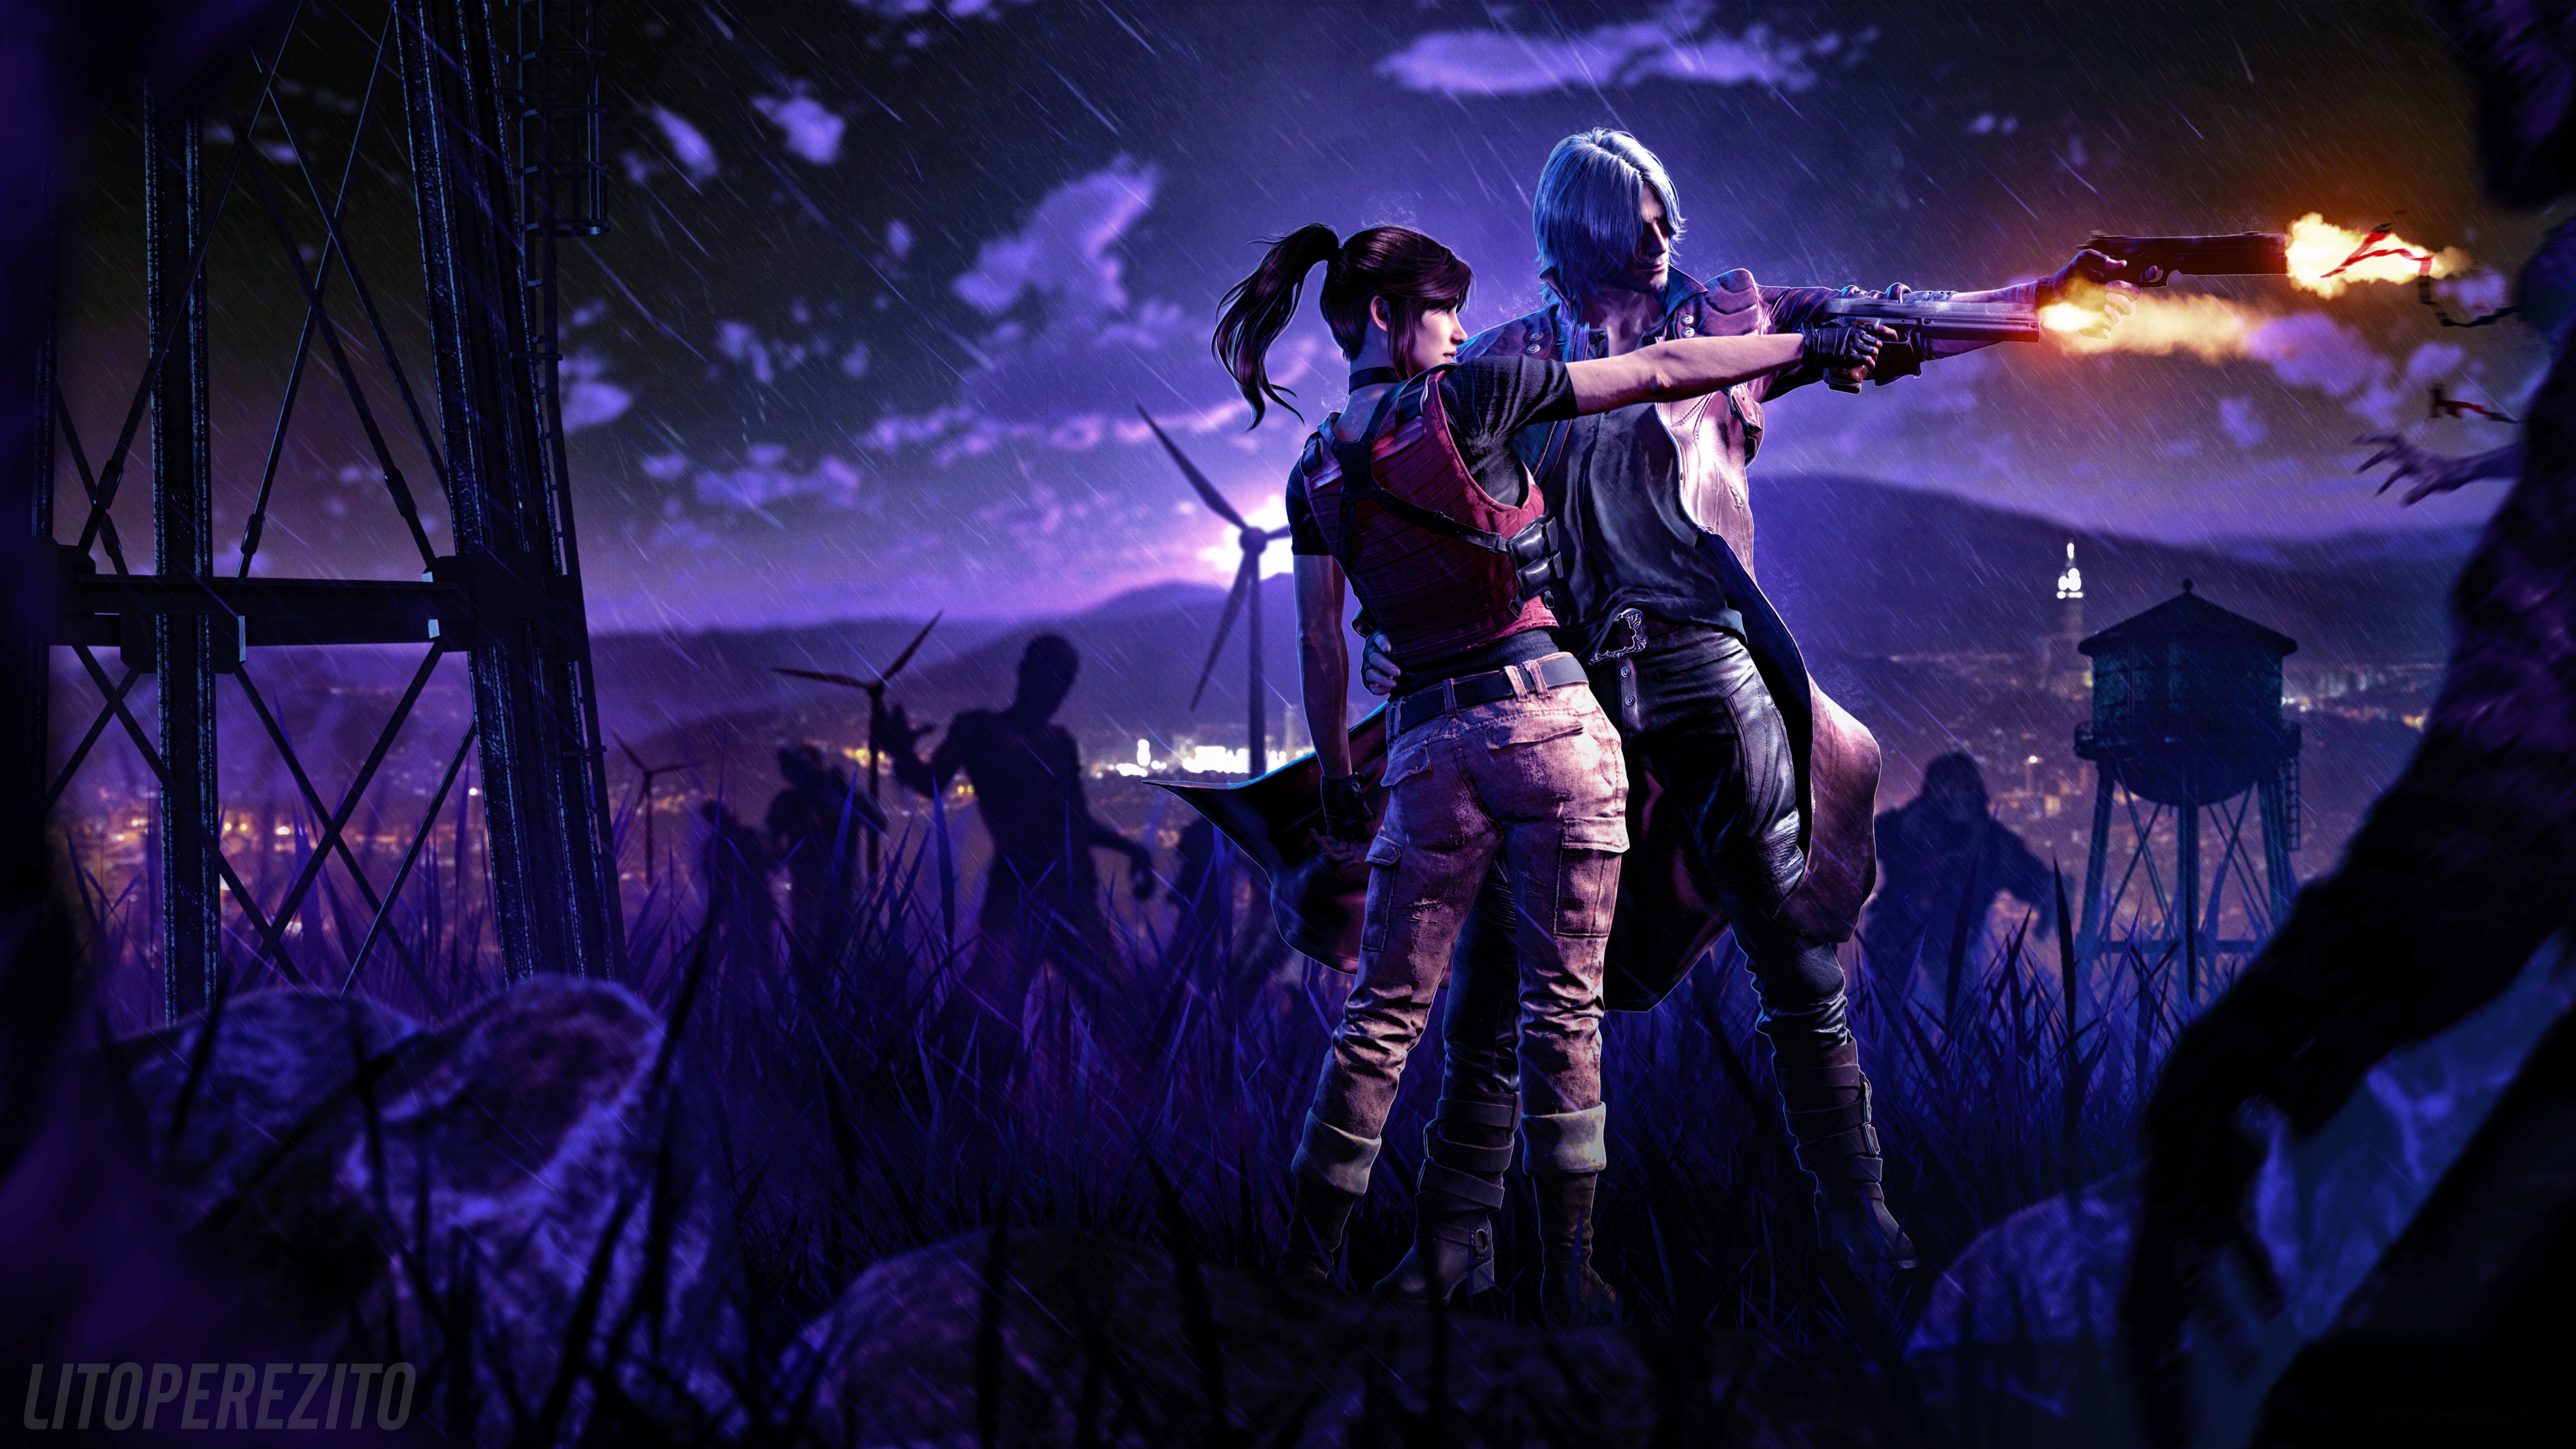 Resident Evil Devil May Cry 5 - Iphone Devil May Cry , HD Wallpaper & Backgrounds